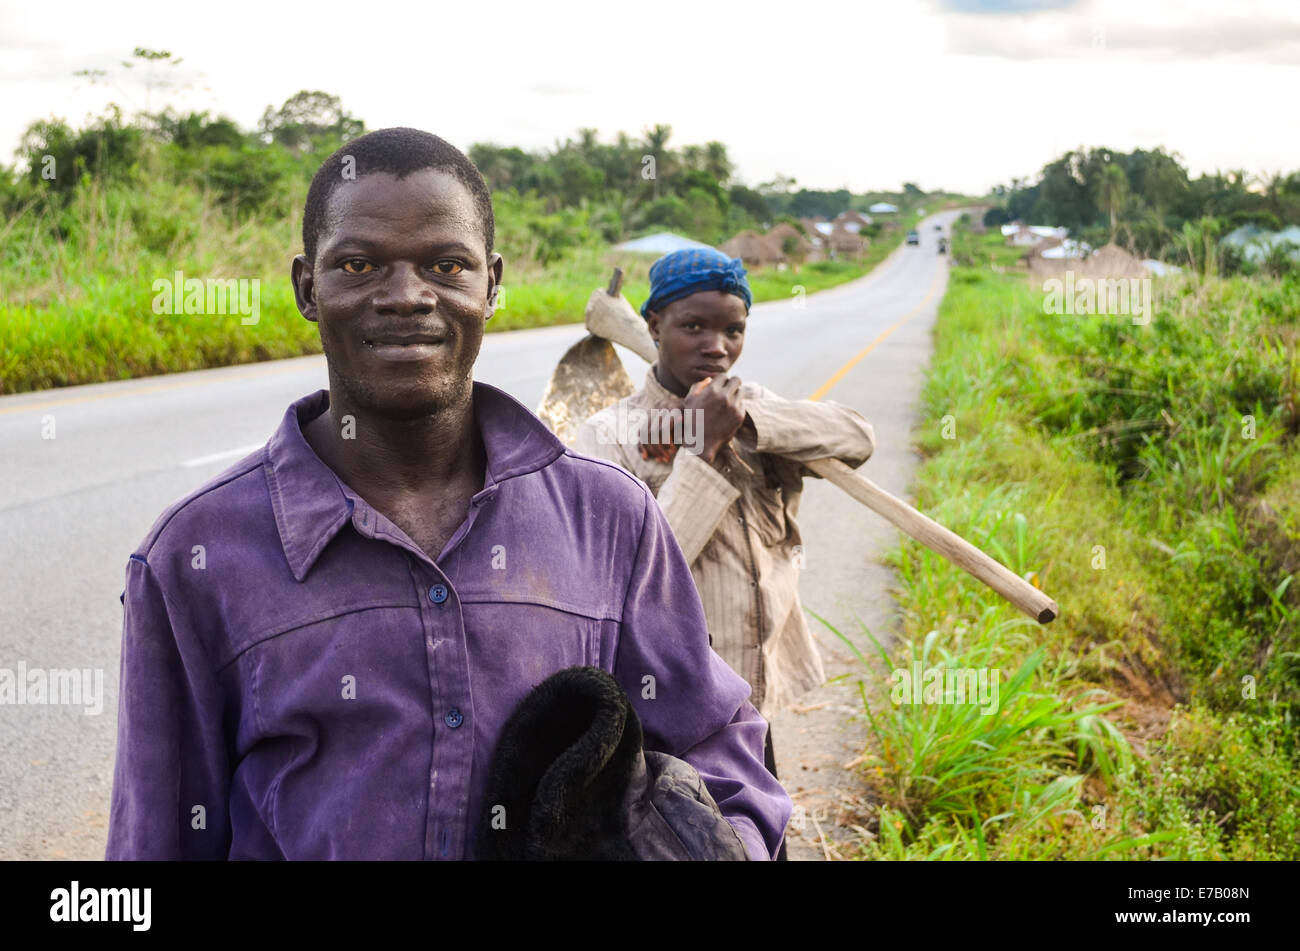 Two men after work in Sierra Leone - Stock Image